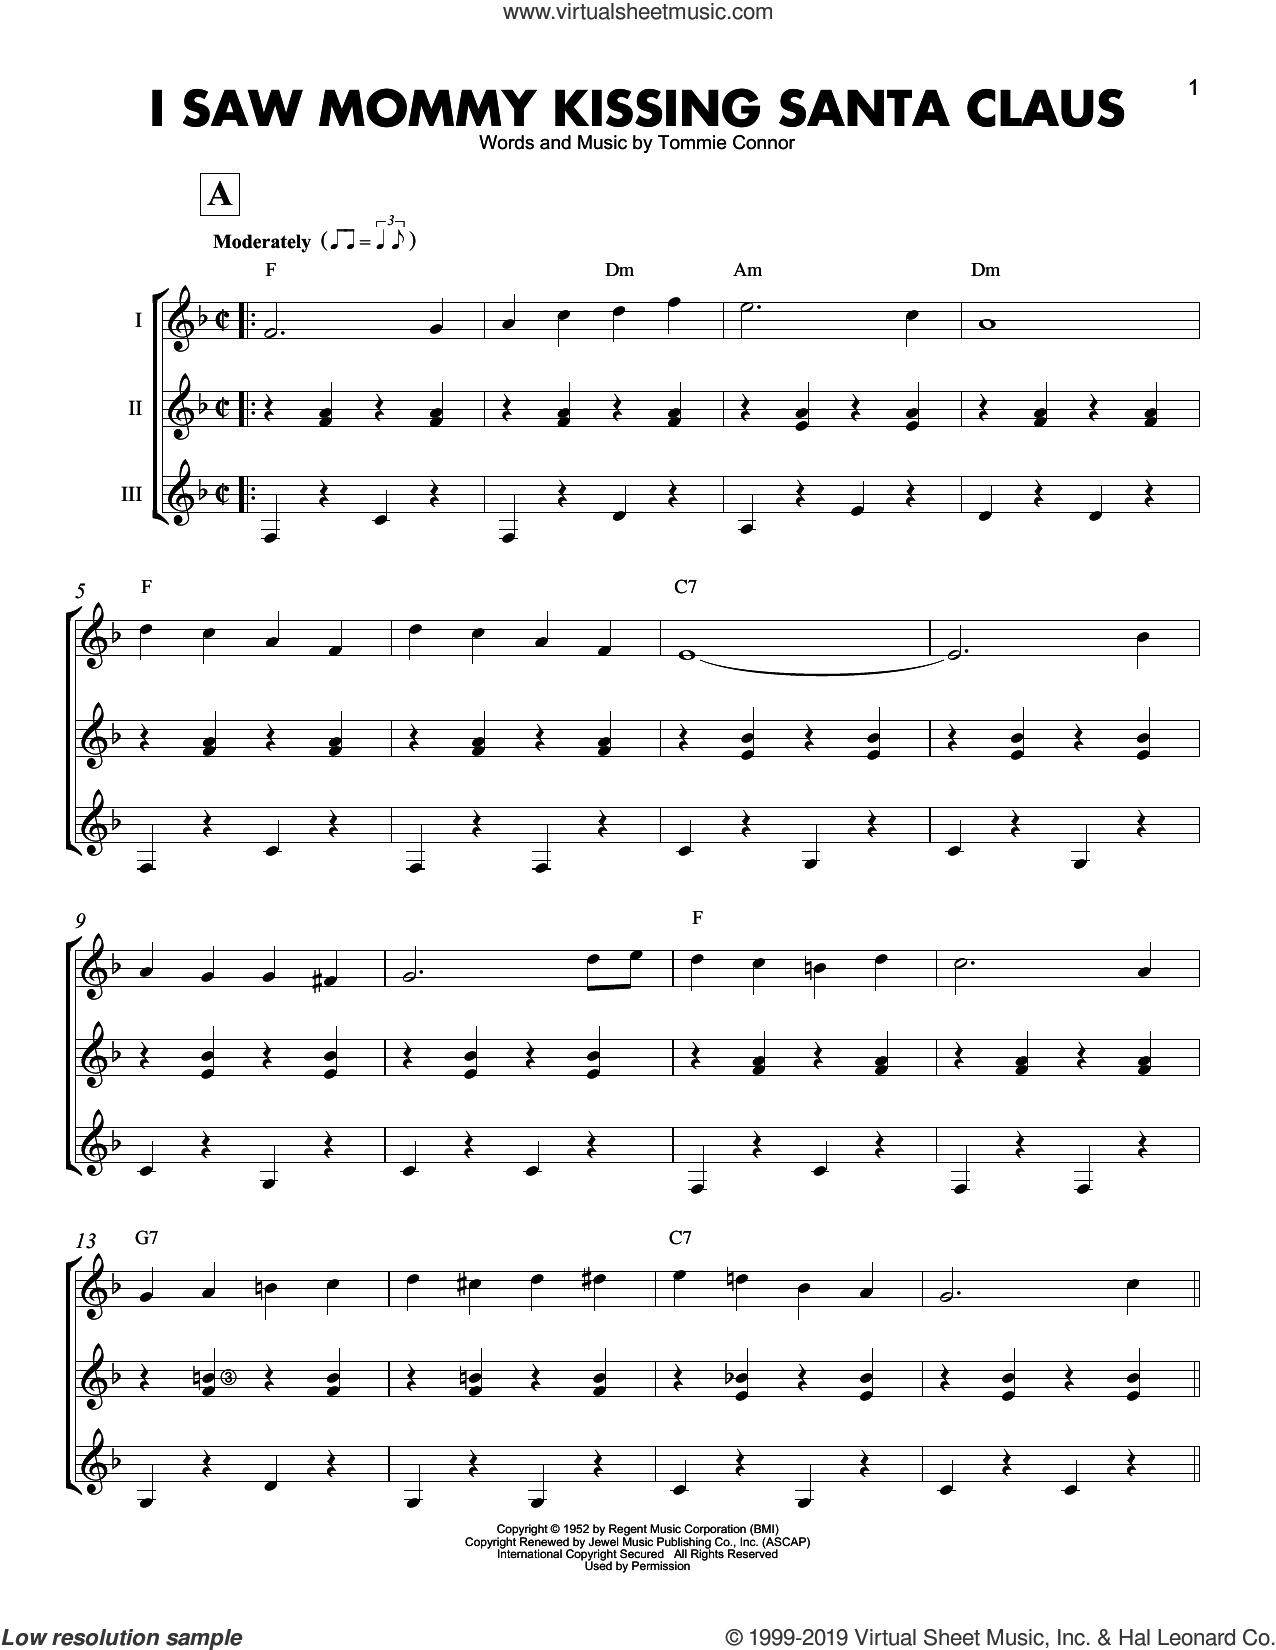 I Saw Mommy Kissing Santa Claus sheet music for guitar ensemble by Tommie Connor, intermediate skill level